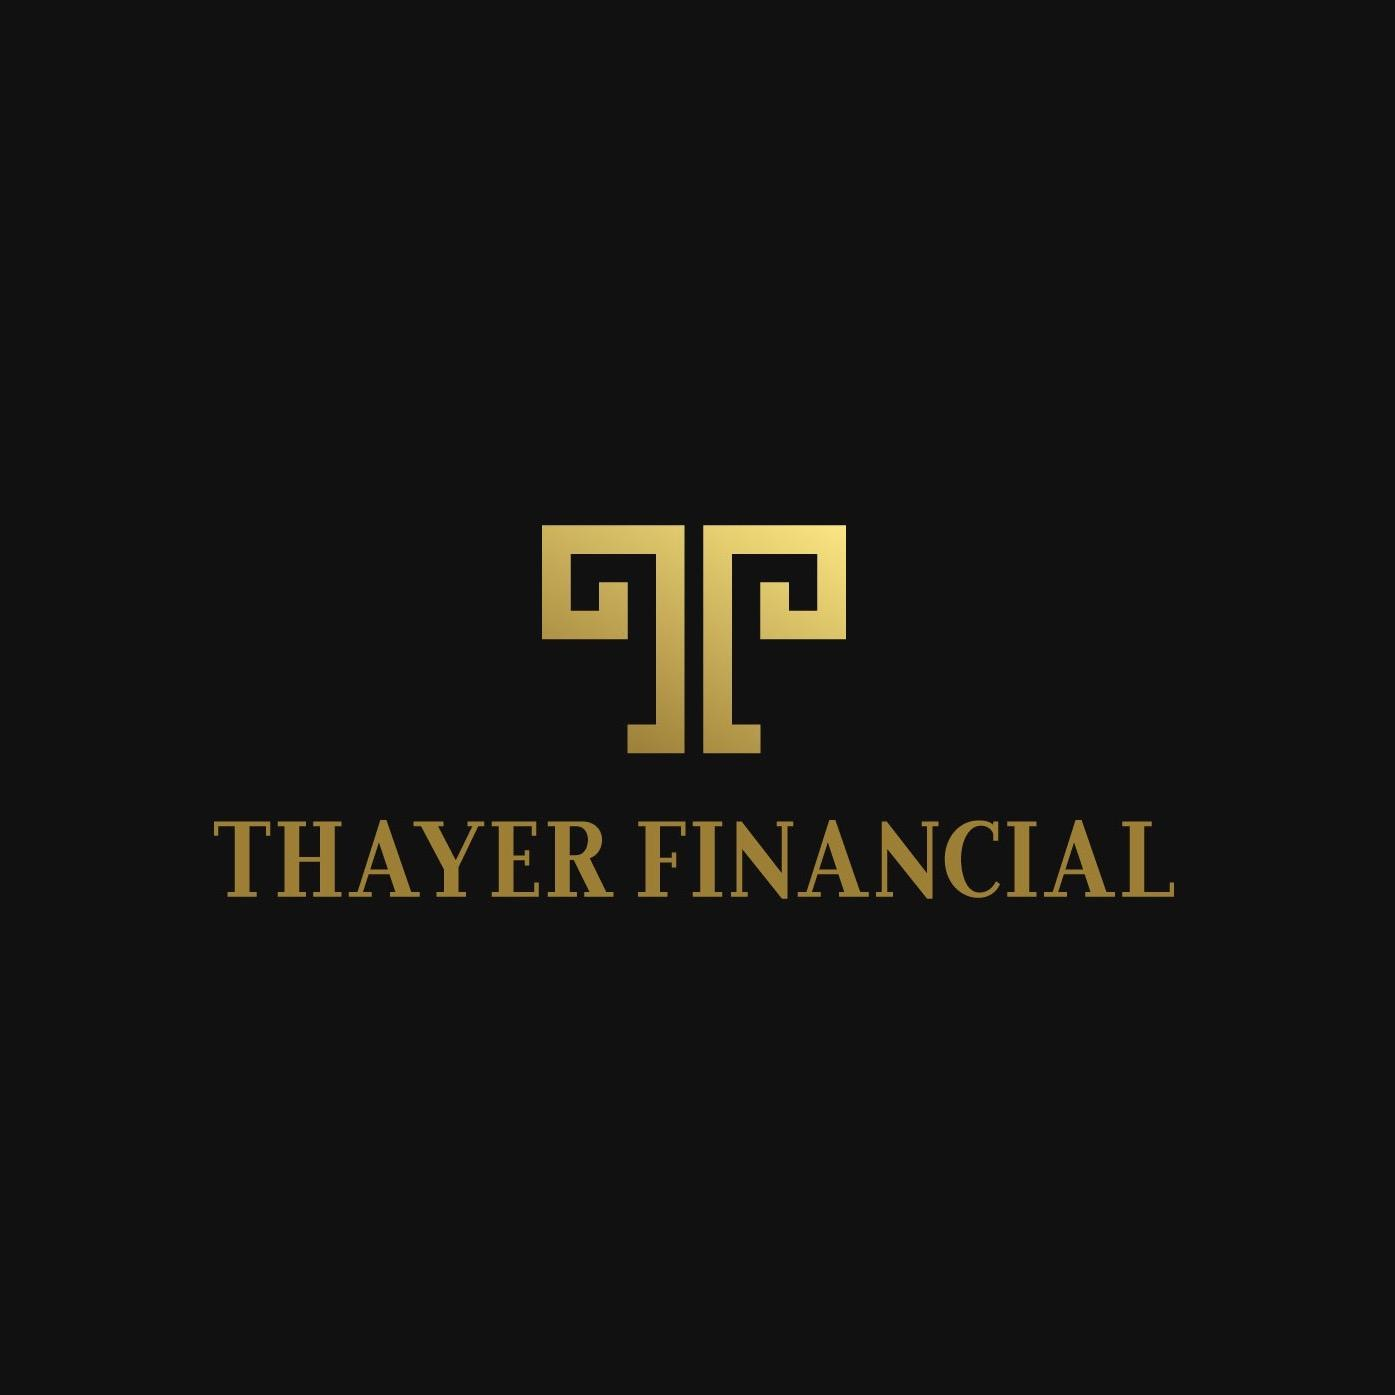 Thayer Financial